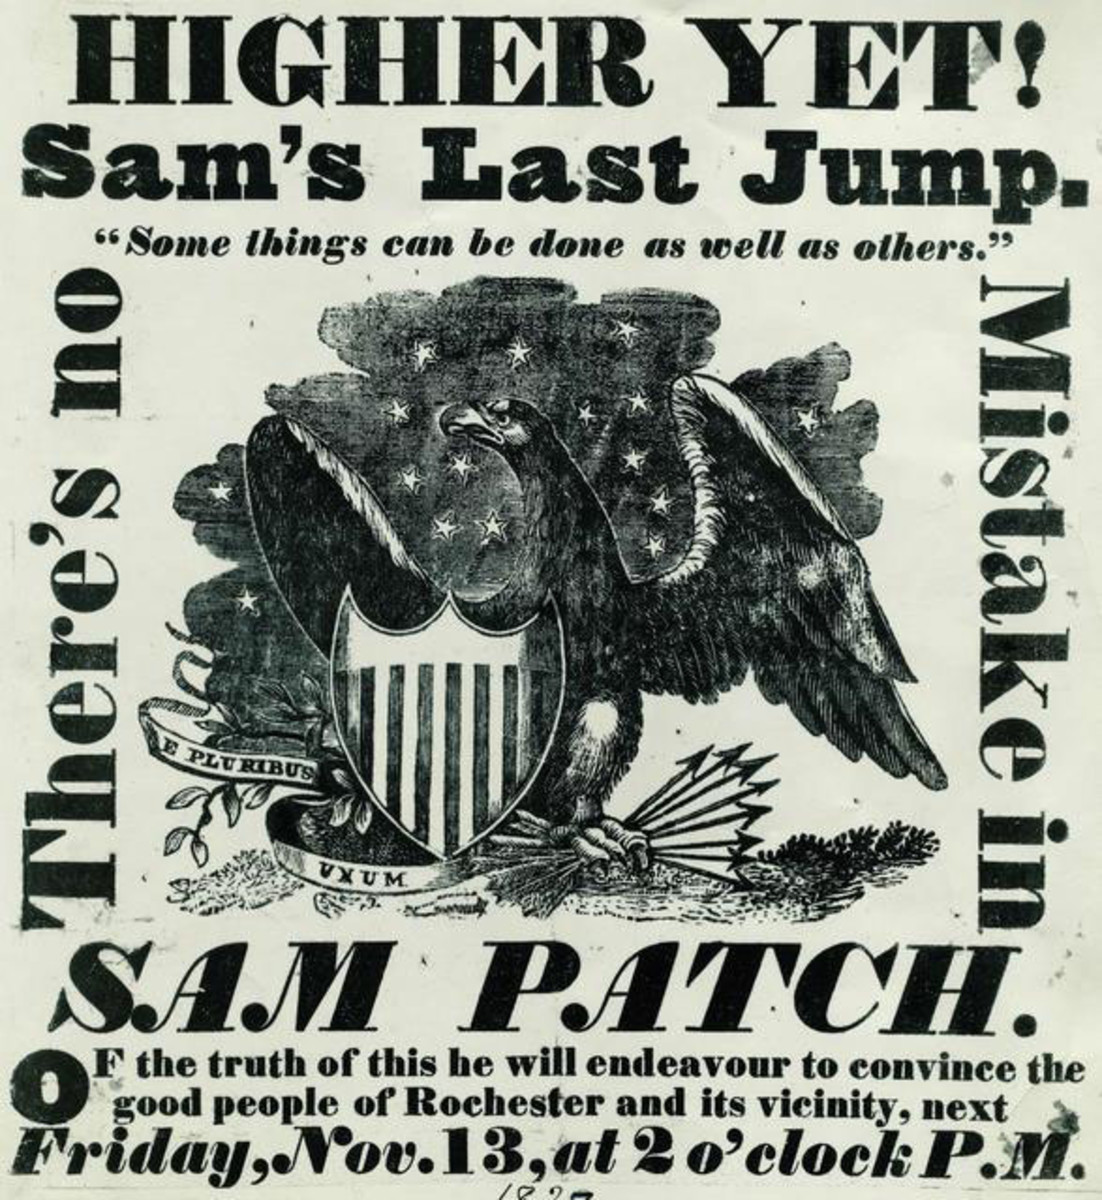 Handbill for Sam Patch's second jump at the Genesee River falls